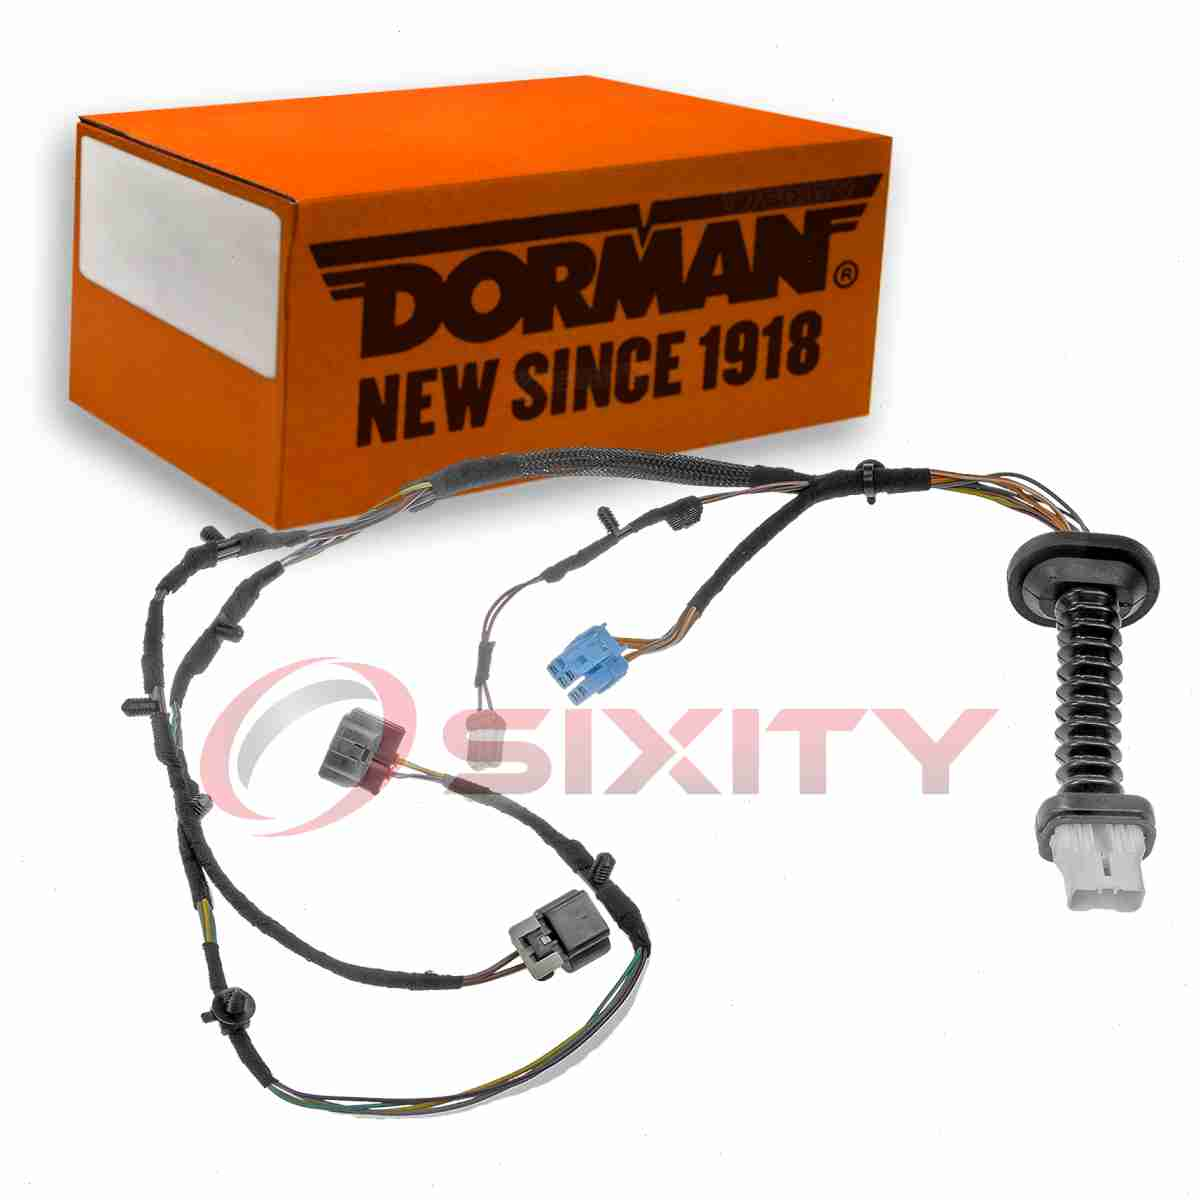 The Dorman TECHoice Door Wiring Harness is engineered with robust materials  to improve durability and performance. A door-wiring harness enables ...